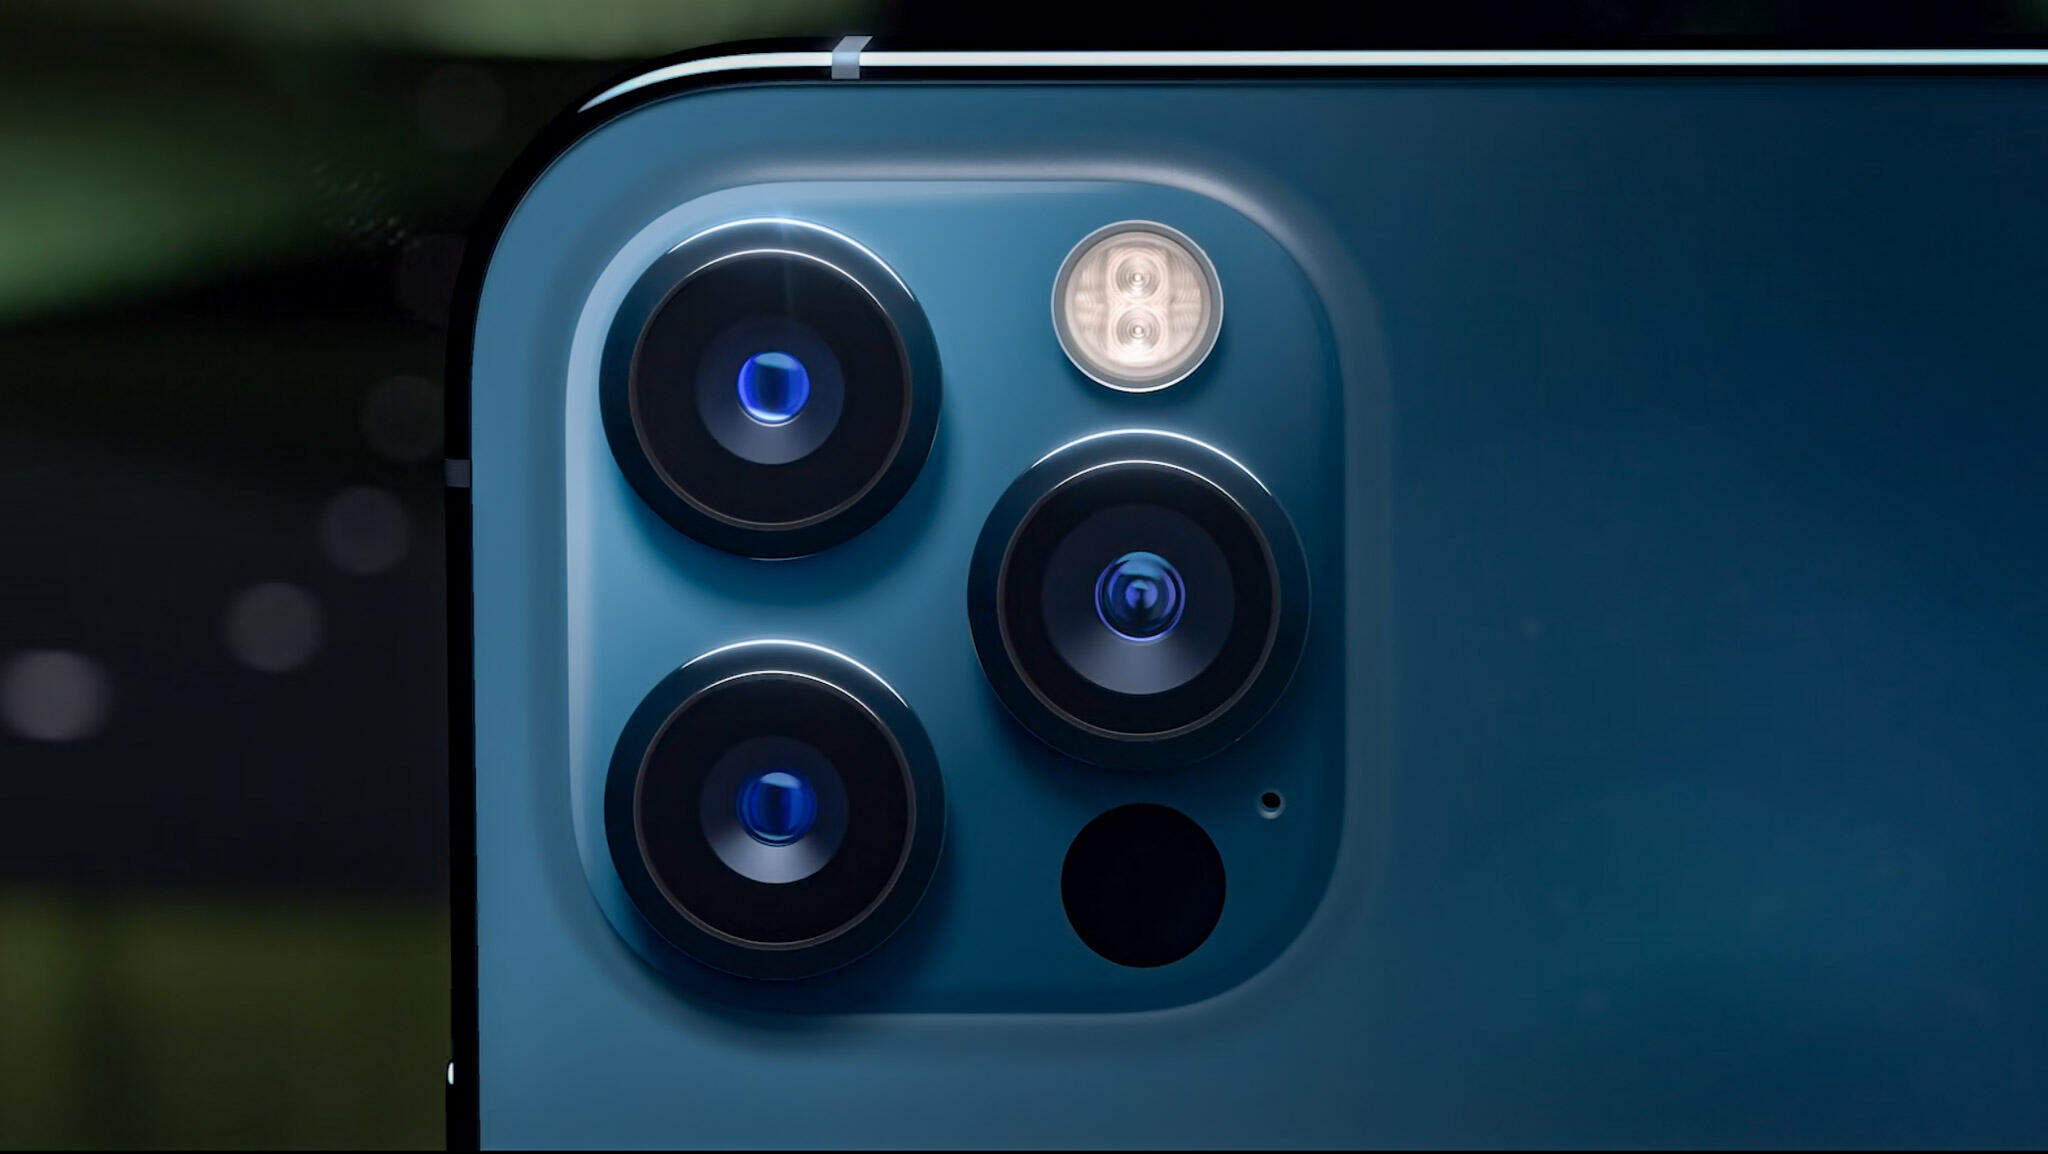 Apple's iPhone Pro phones get new camera abilities, including a bigger image sensor, a faster main camera lens, improved image stabilization, a lidar sensor for low-light autofocus and a longer-reach telephoto lens on the iPhone Pro Max.